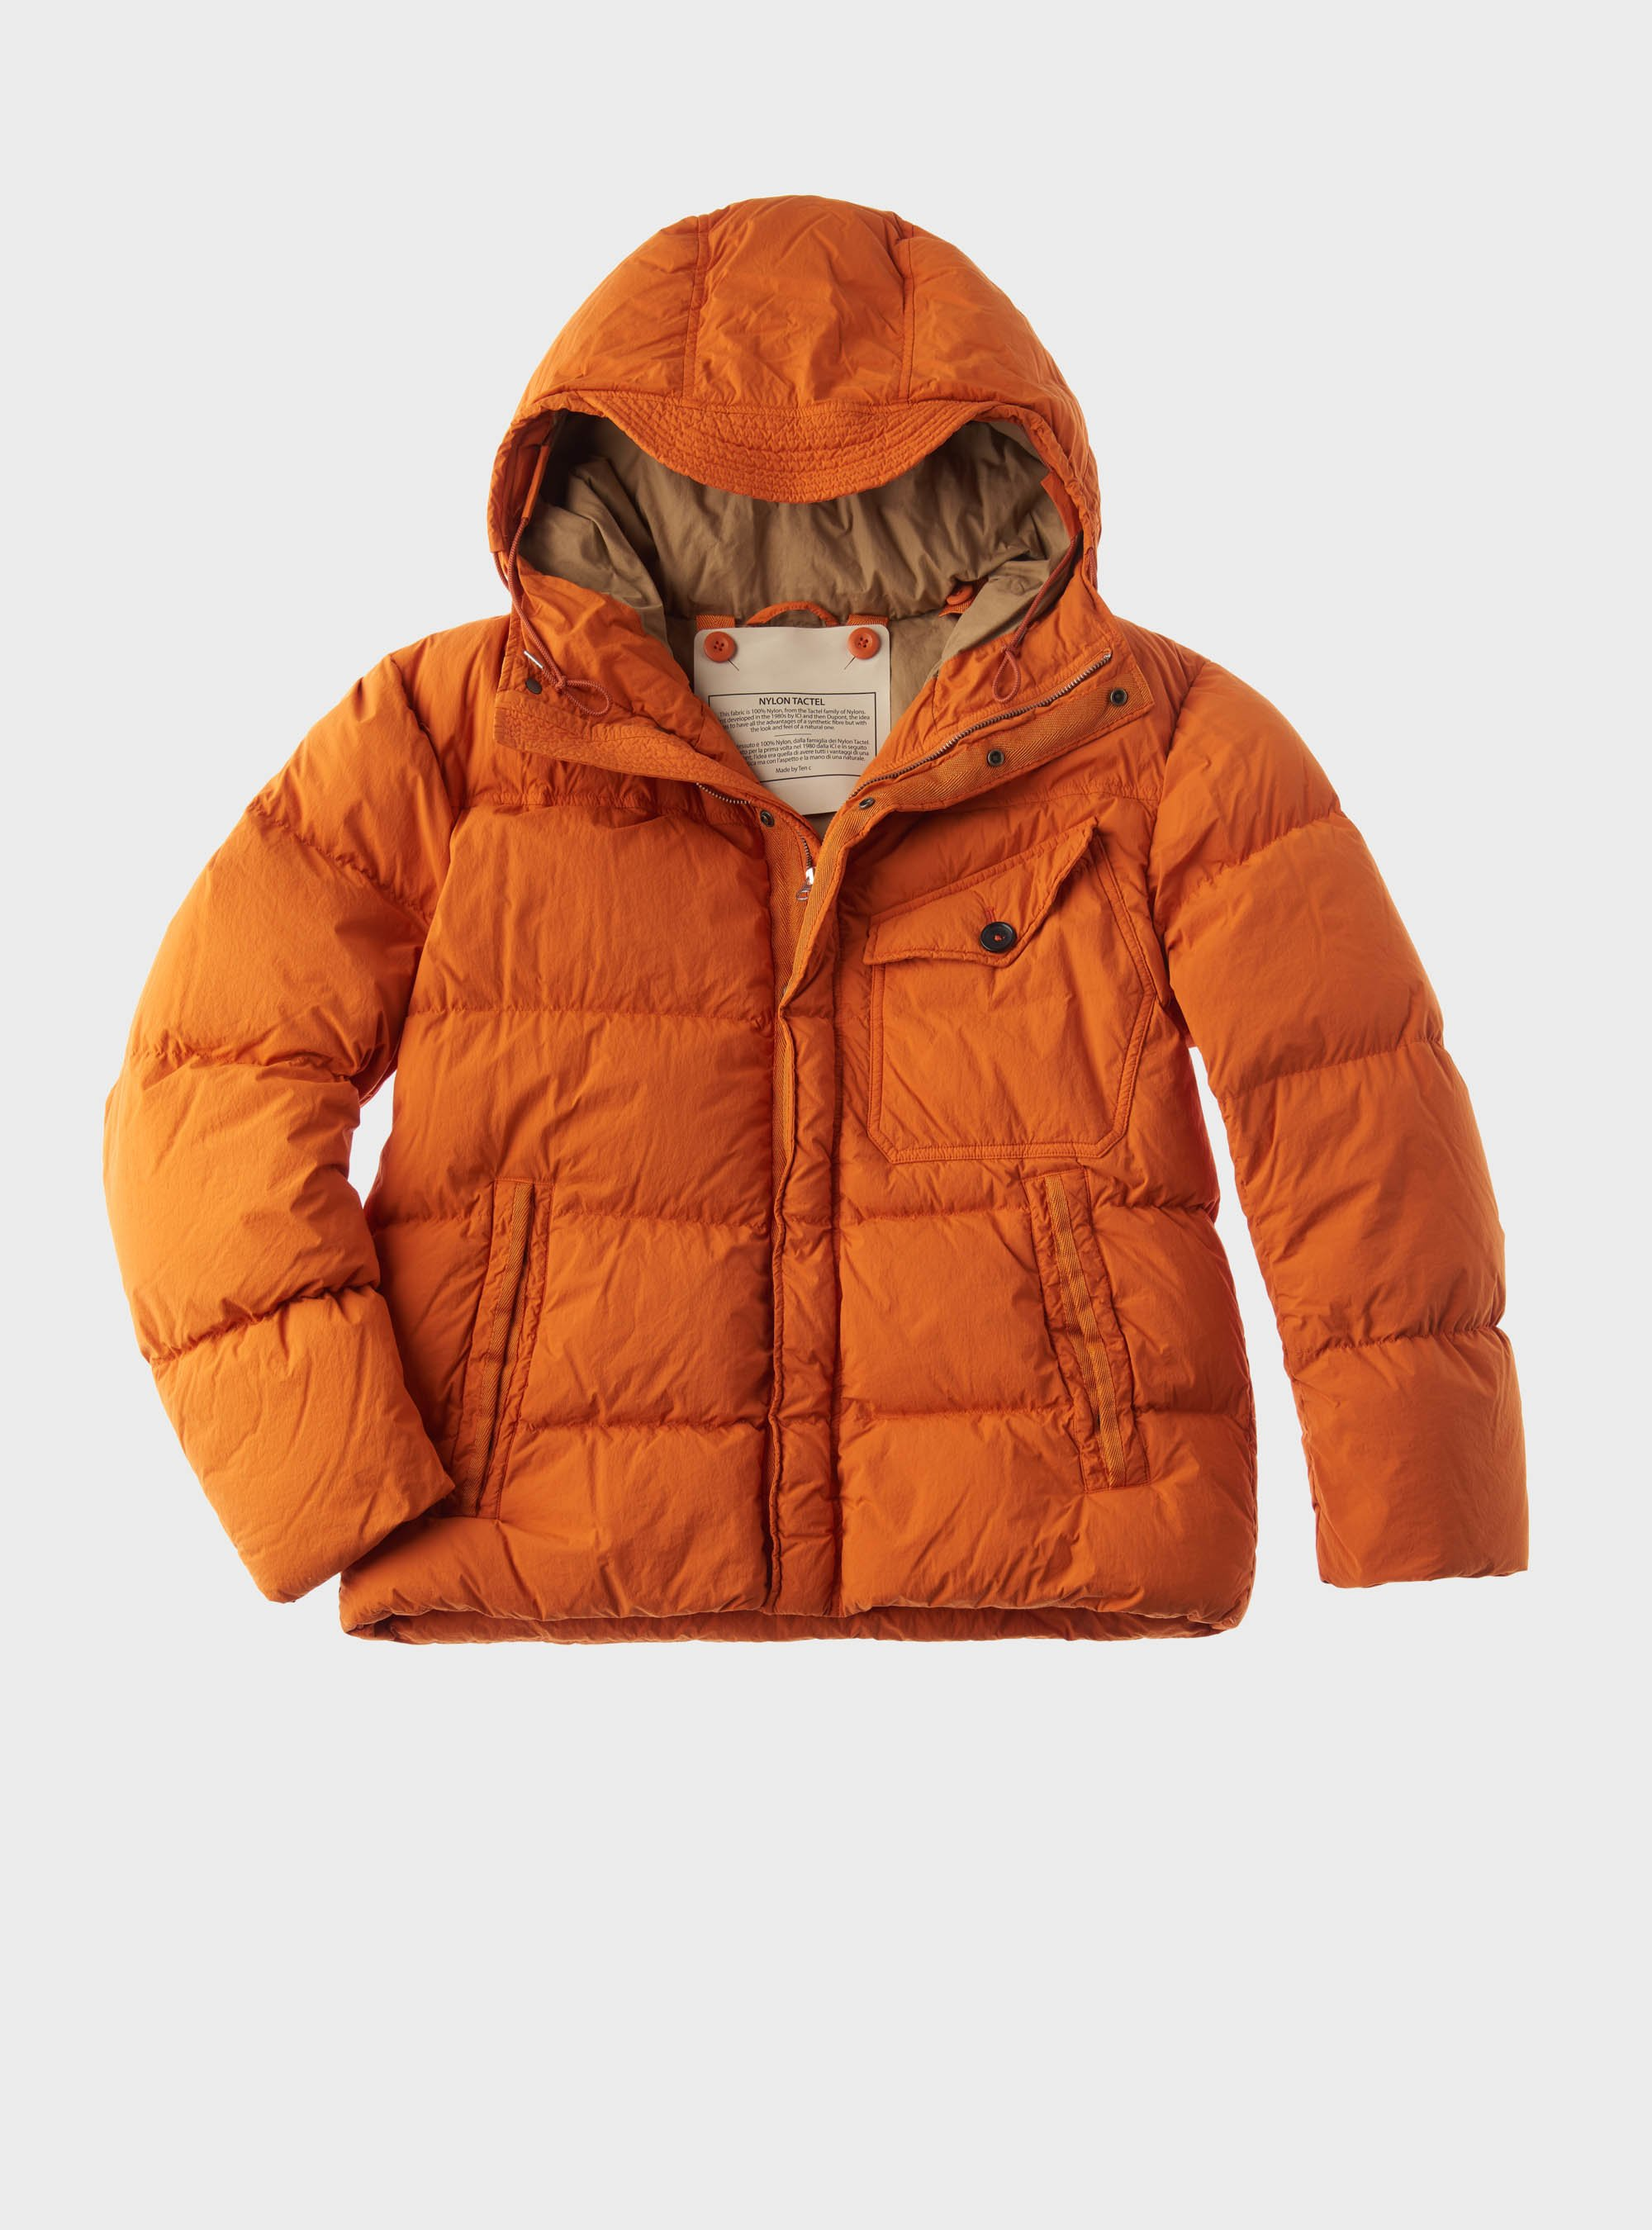 TEN C - SURVIVAL DOWN JACKET - Clementine - TEN C